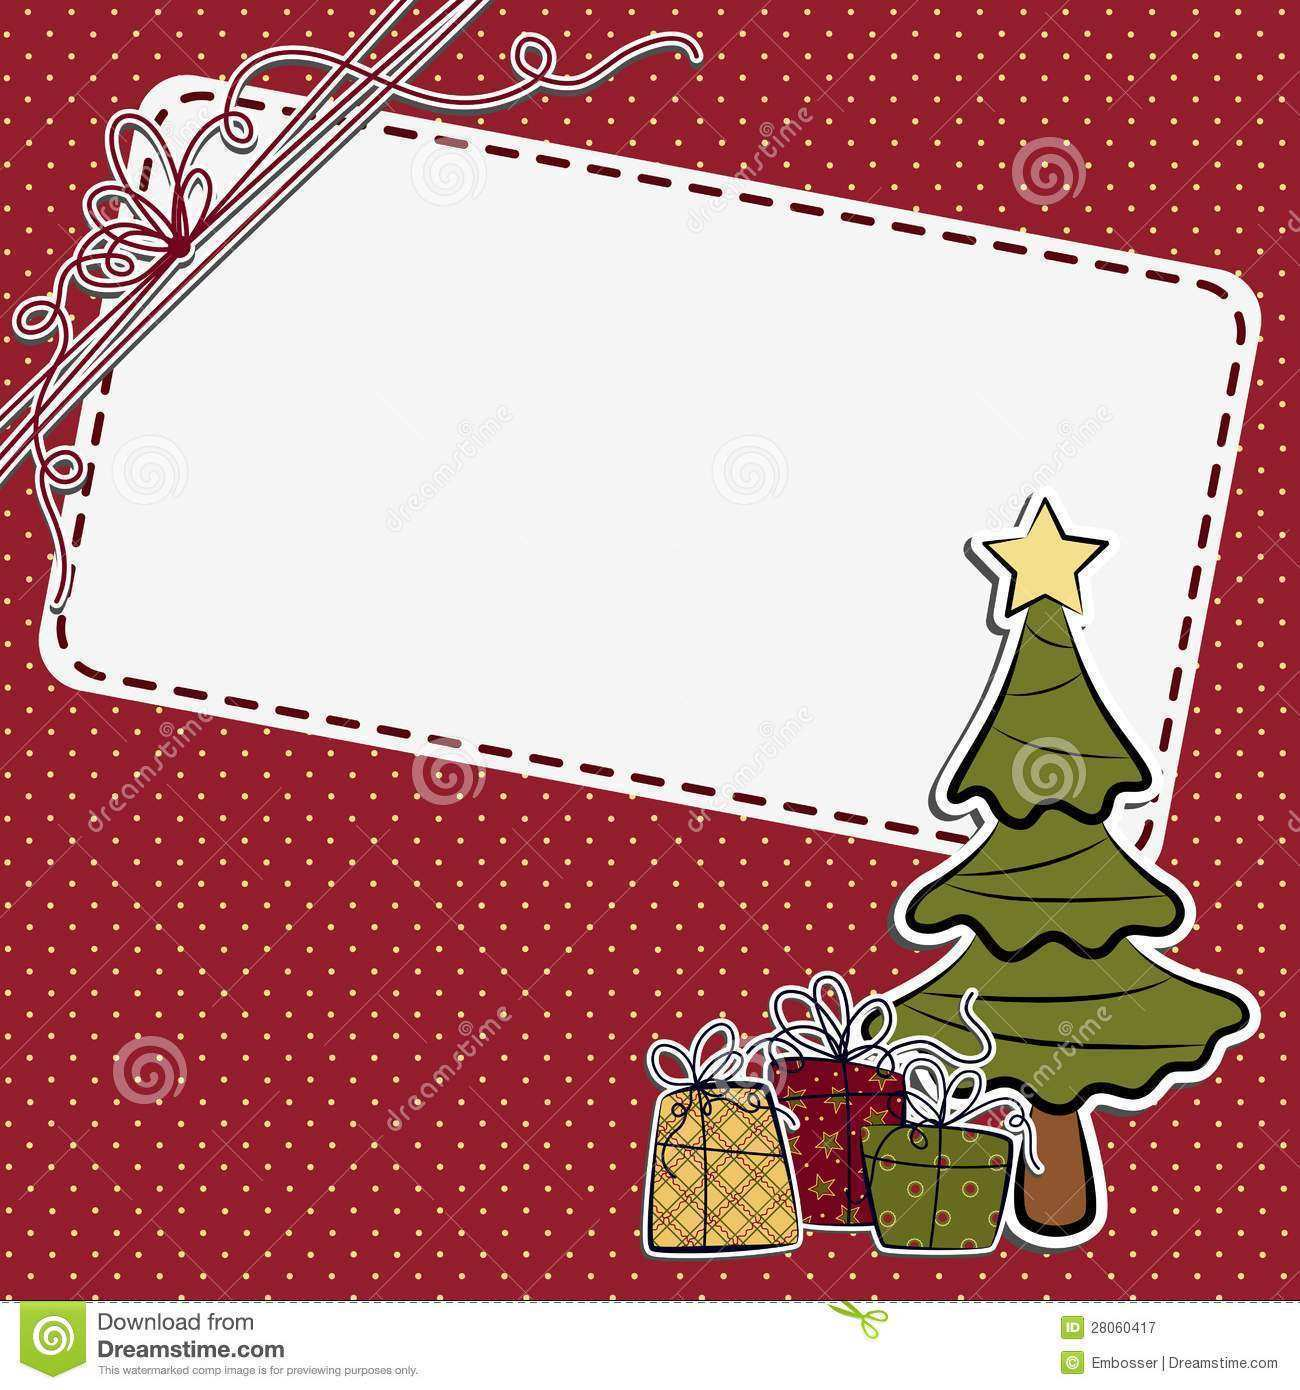 63 Online Christmas Card Greetings Template in Photoshop for Christmas Card Greetings Template